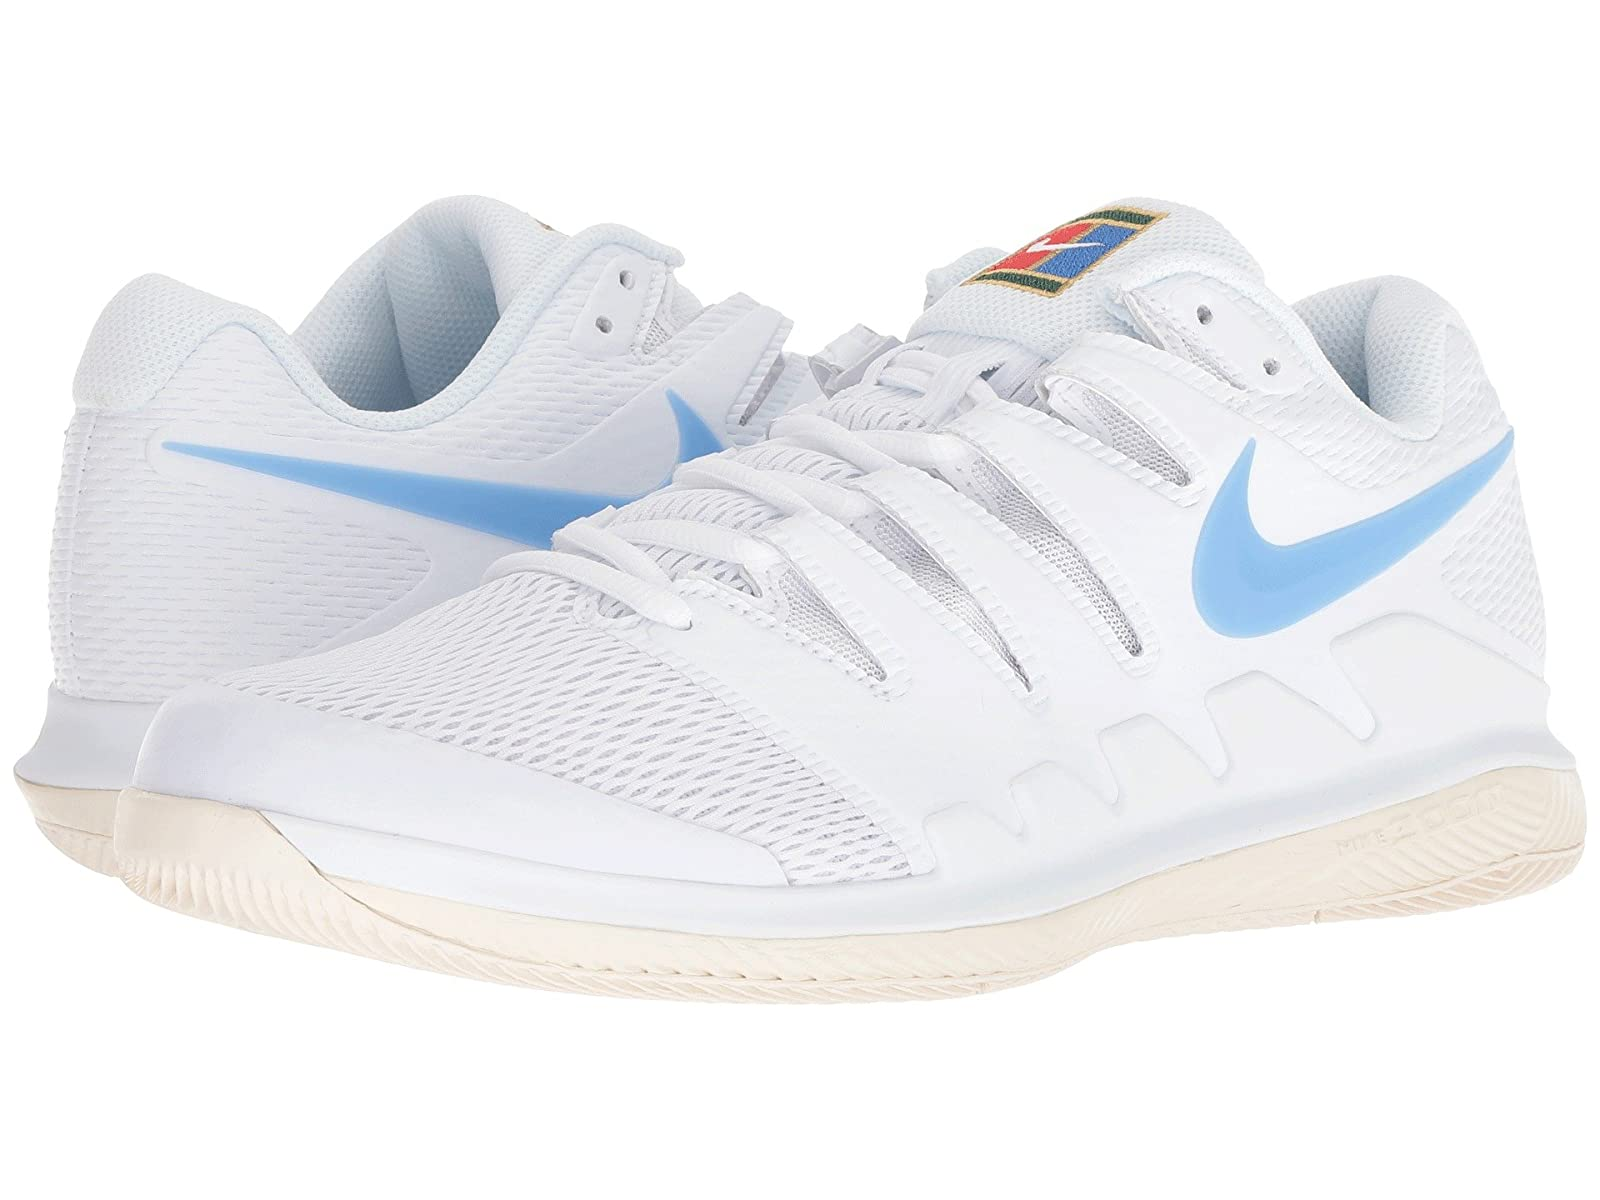 Nike Air Zoom Vapor XAtmospheric grades have affordable shoes